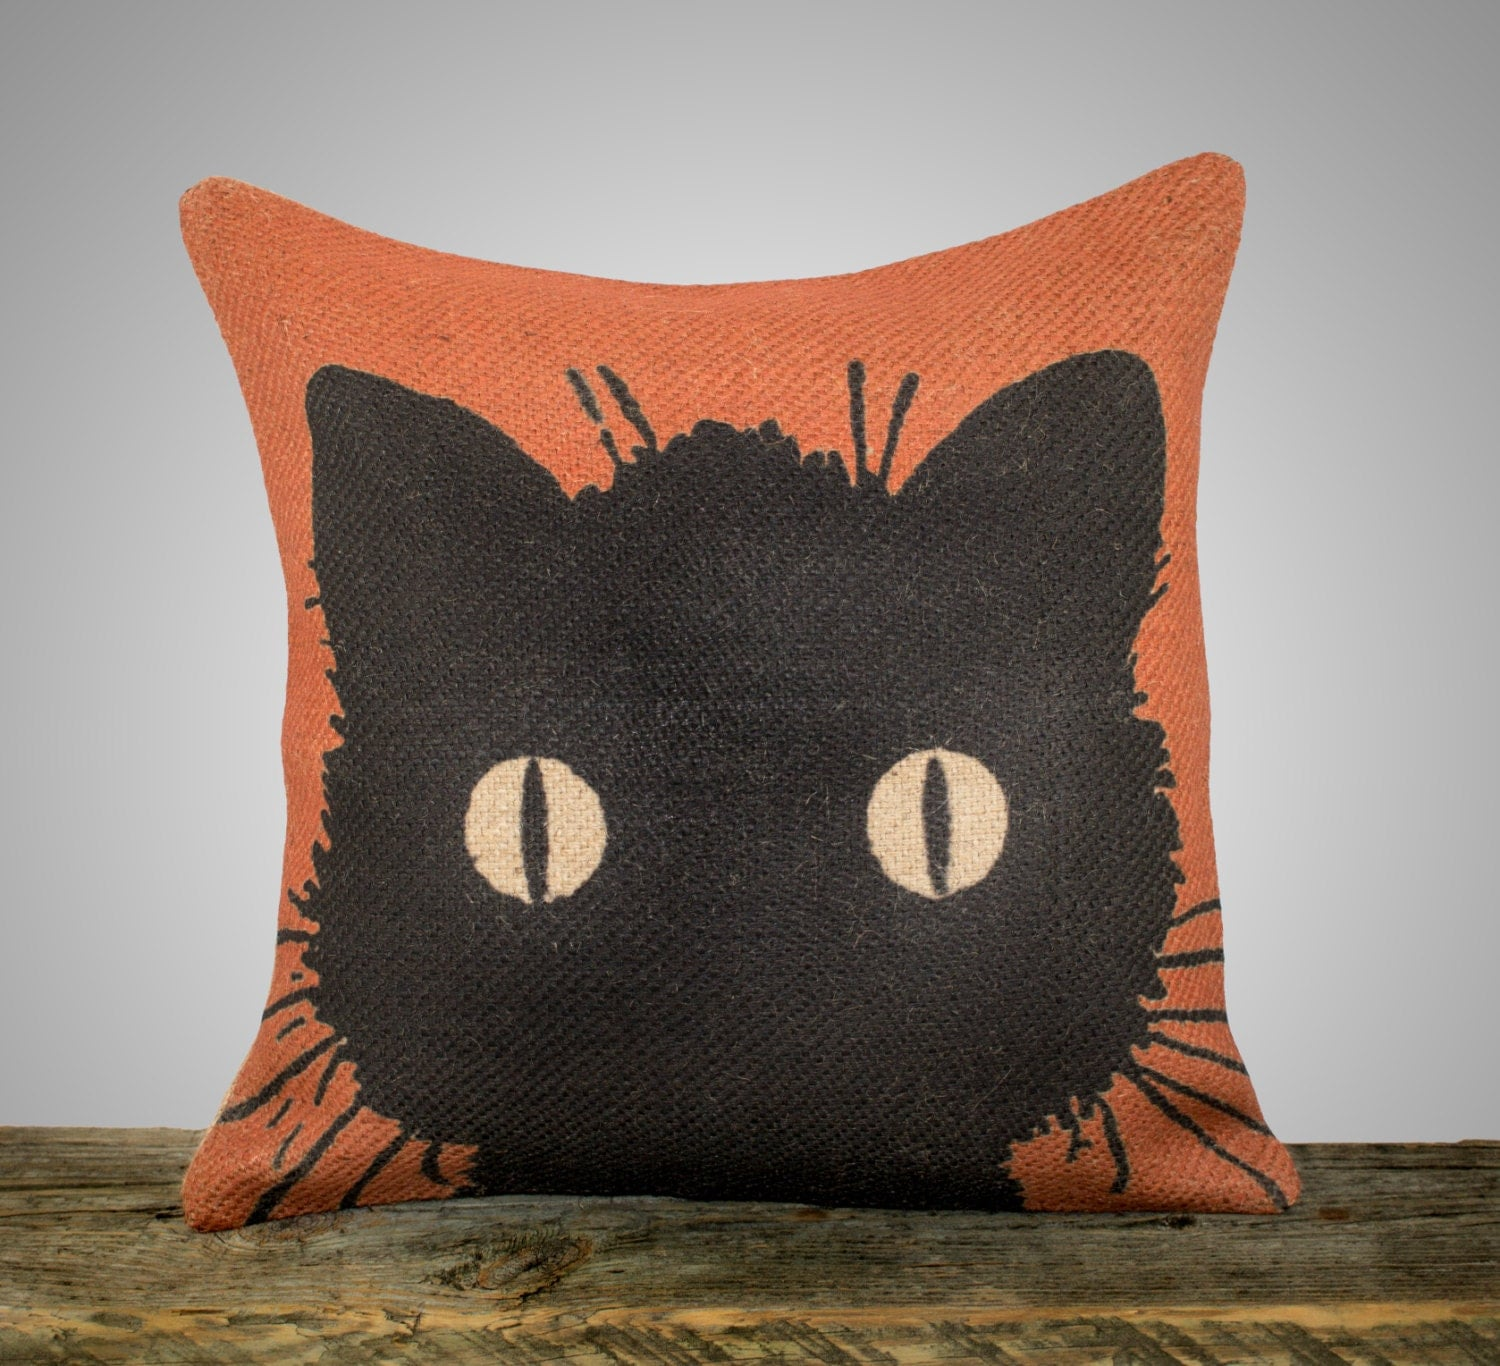 Black Cat Pillow Halloween Decoration Orange Burlap Throw